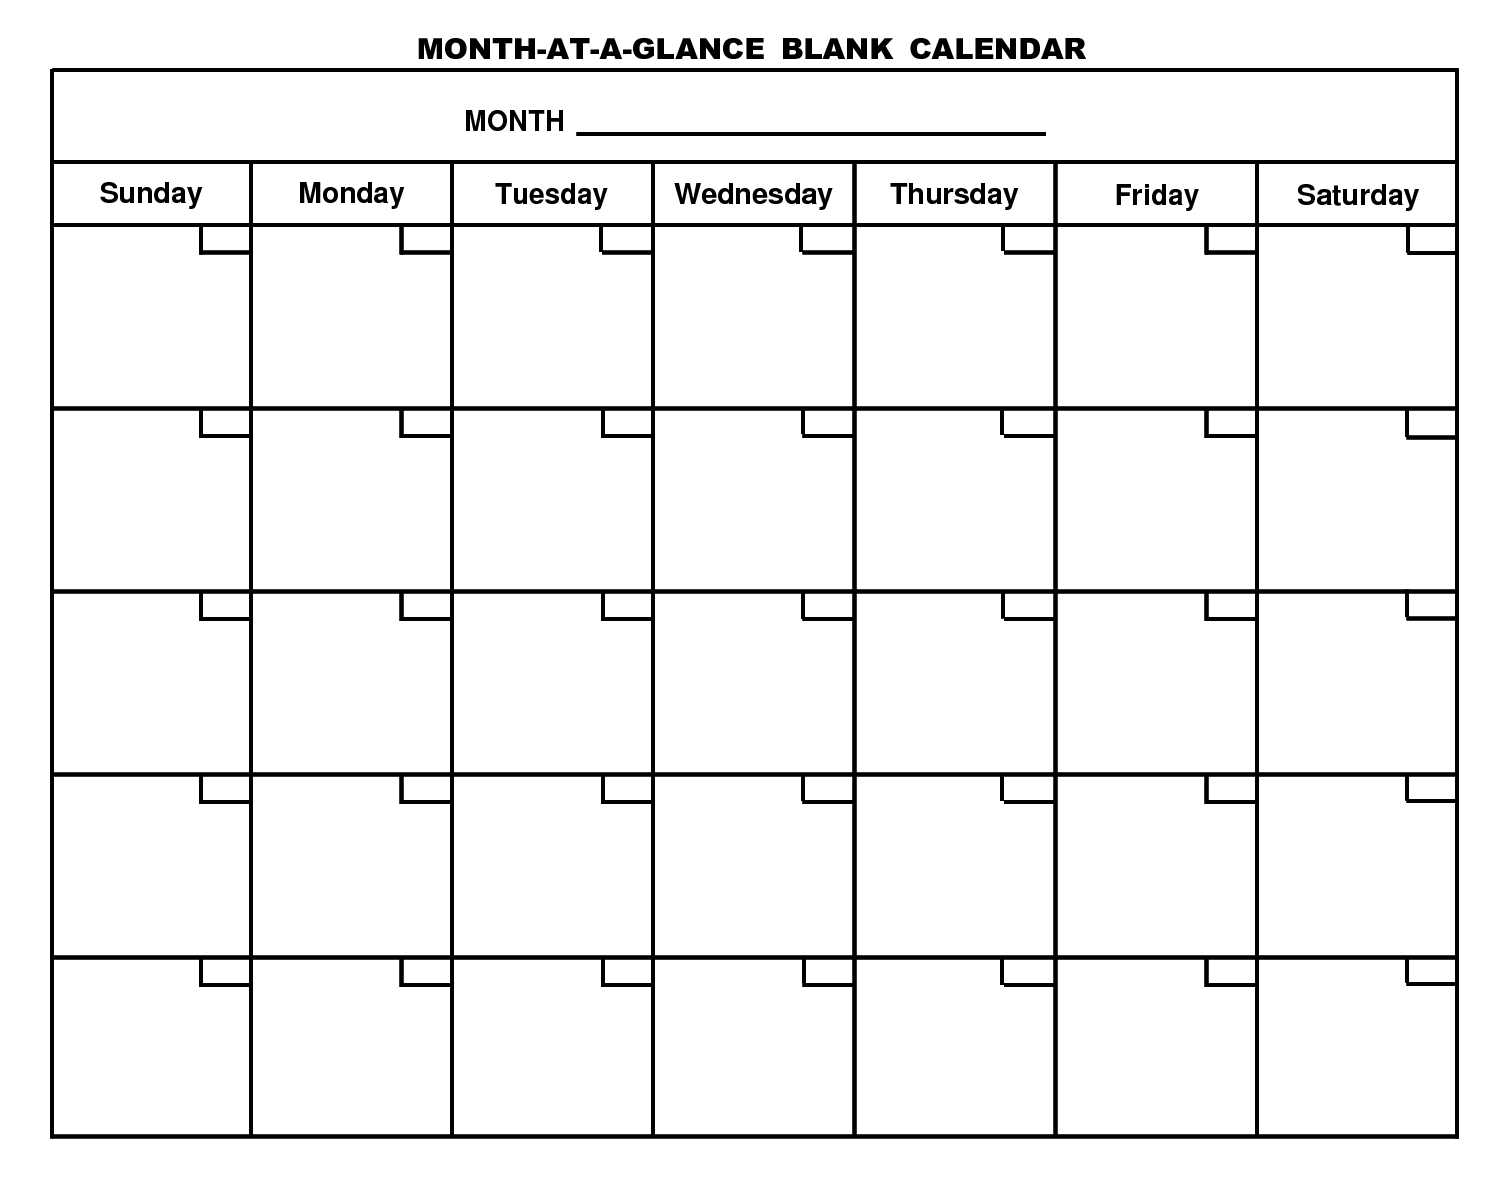 Schedule Template Monthly Calendar Planner Excel Free Download with regard to Printable Monthly Calendar Planner Template